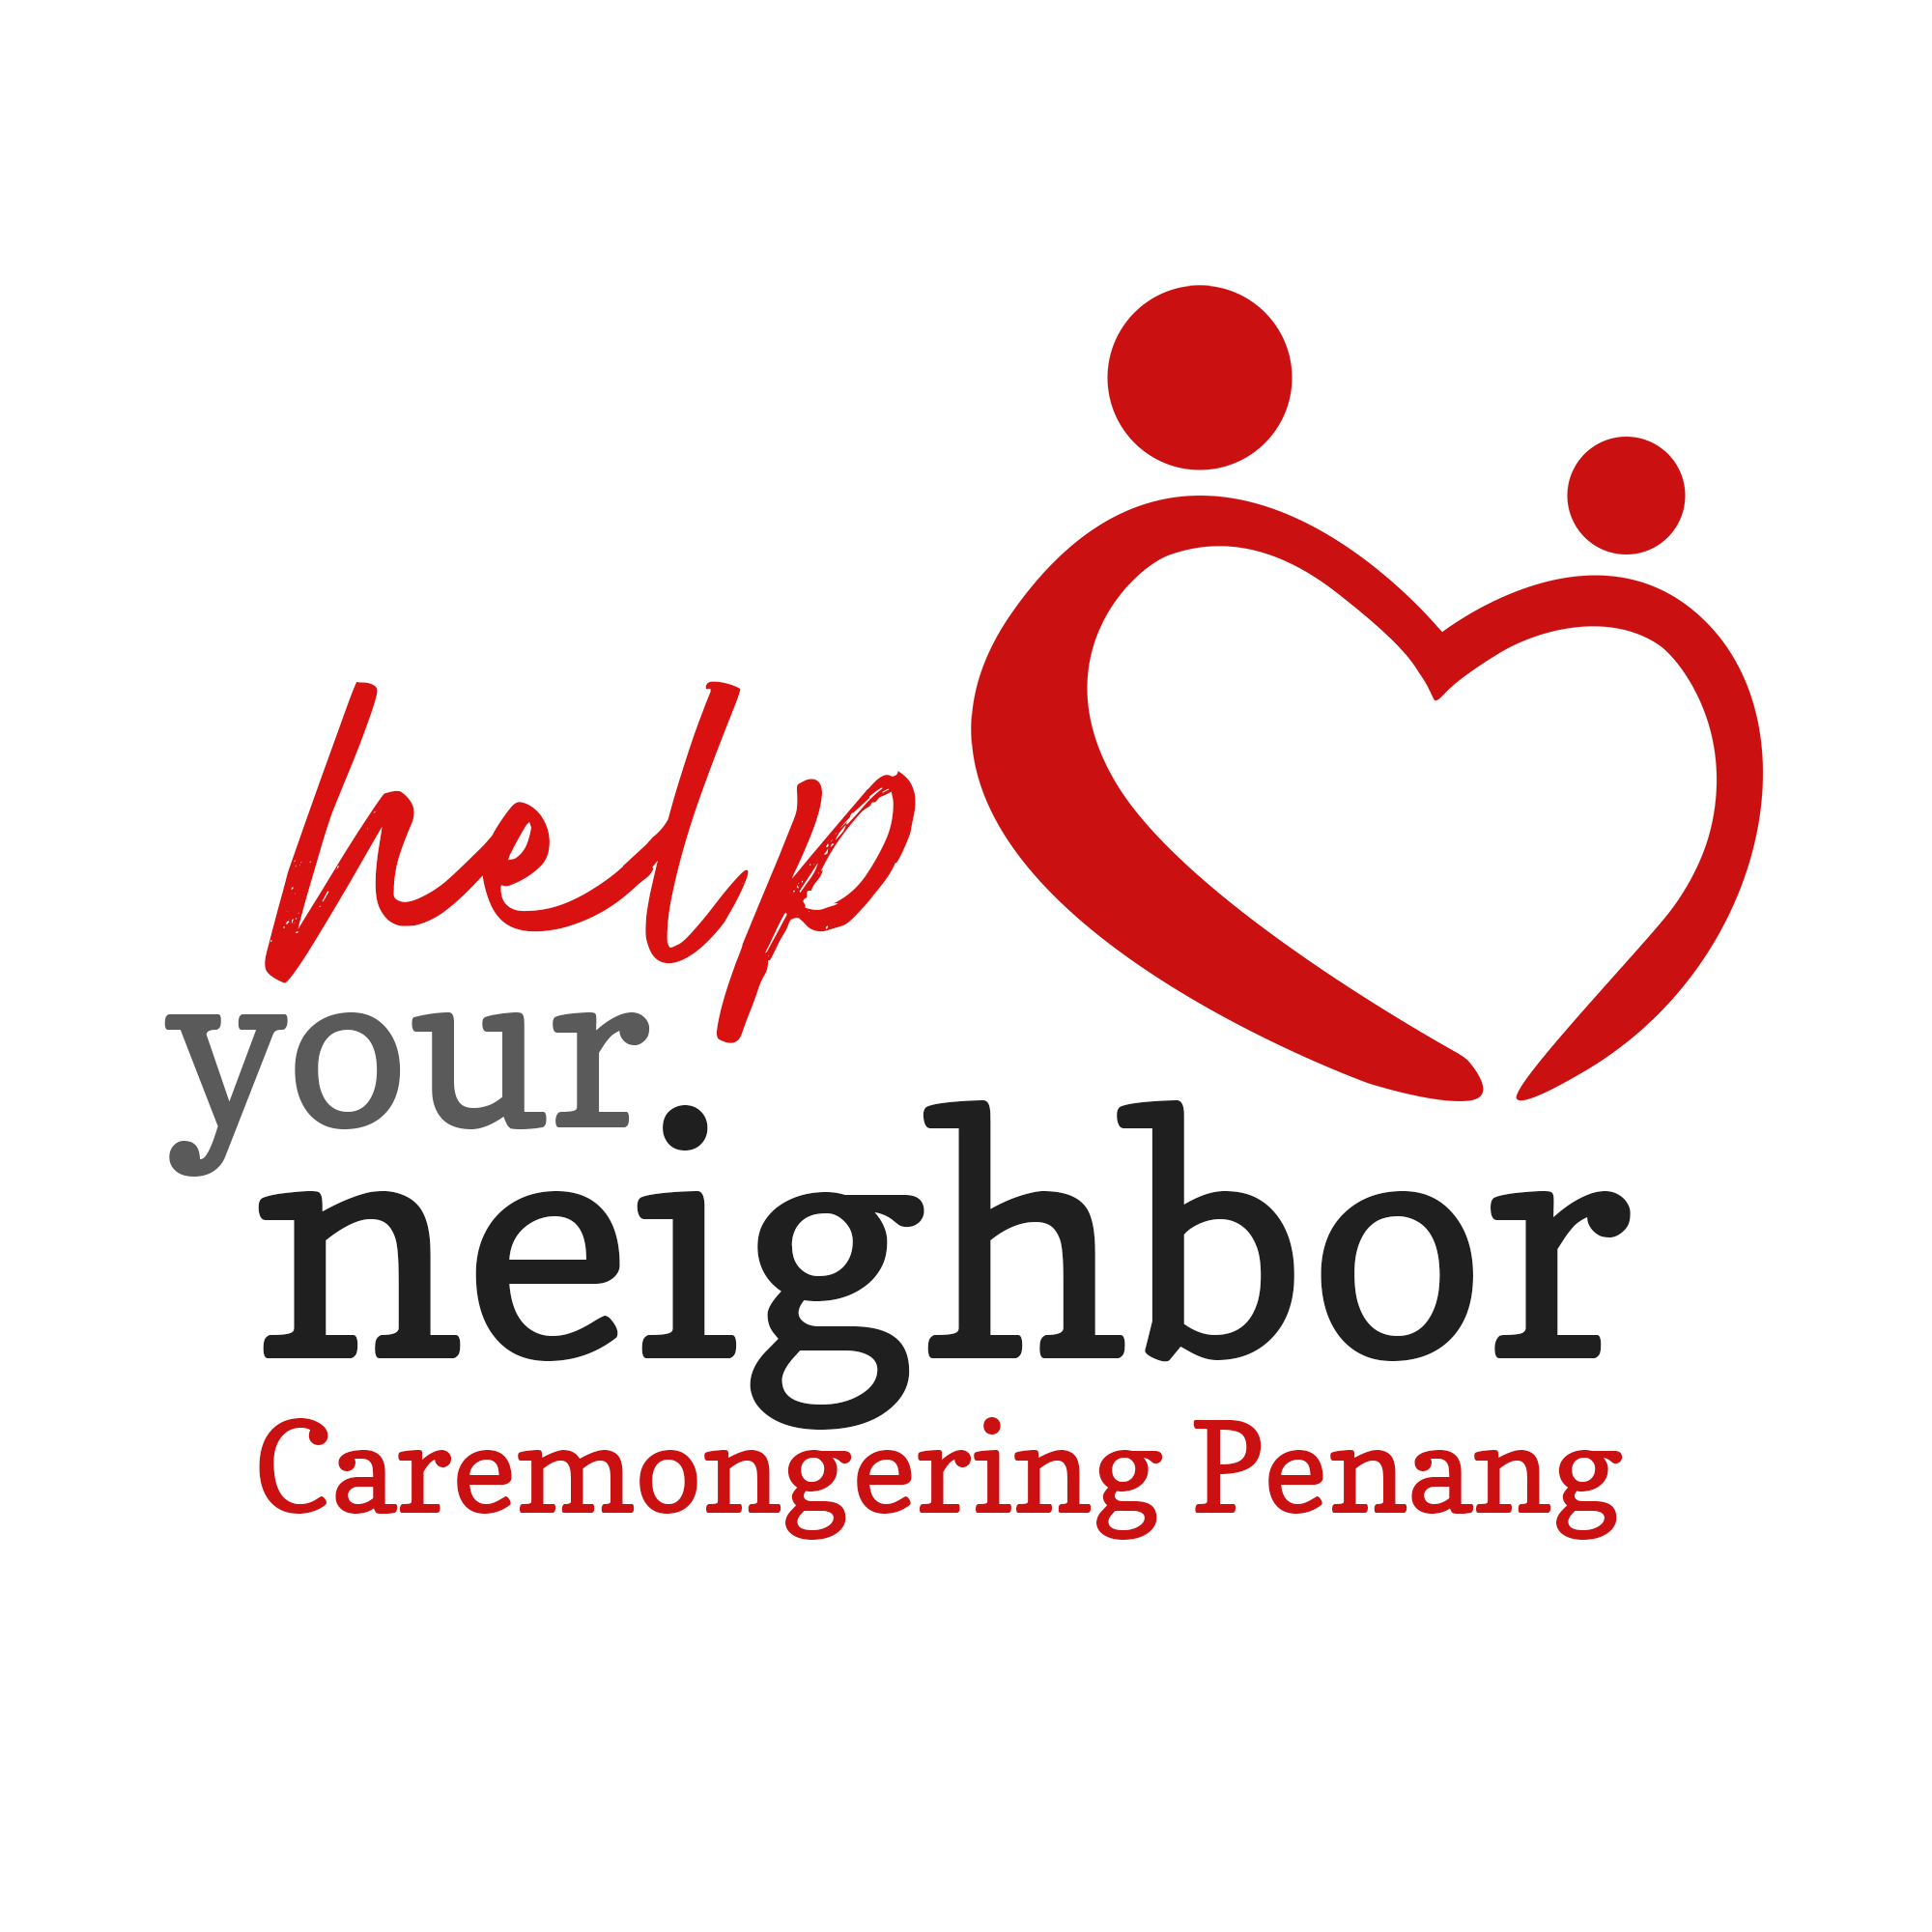 Caremongering Penang